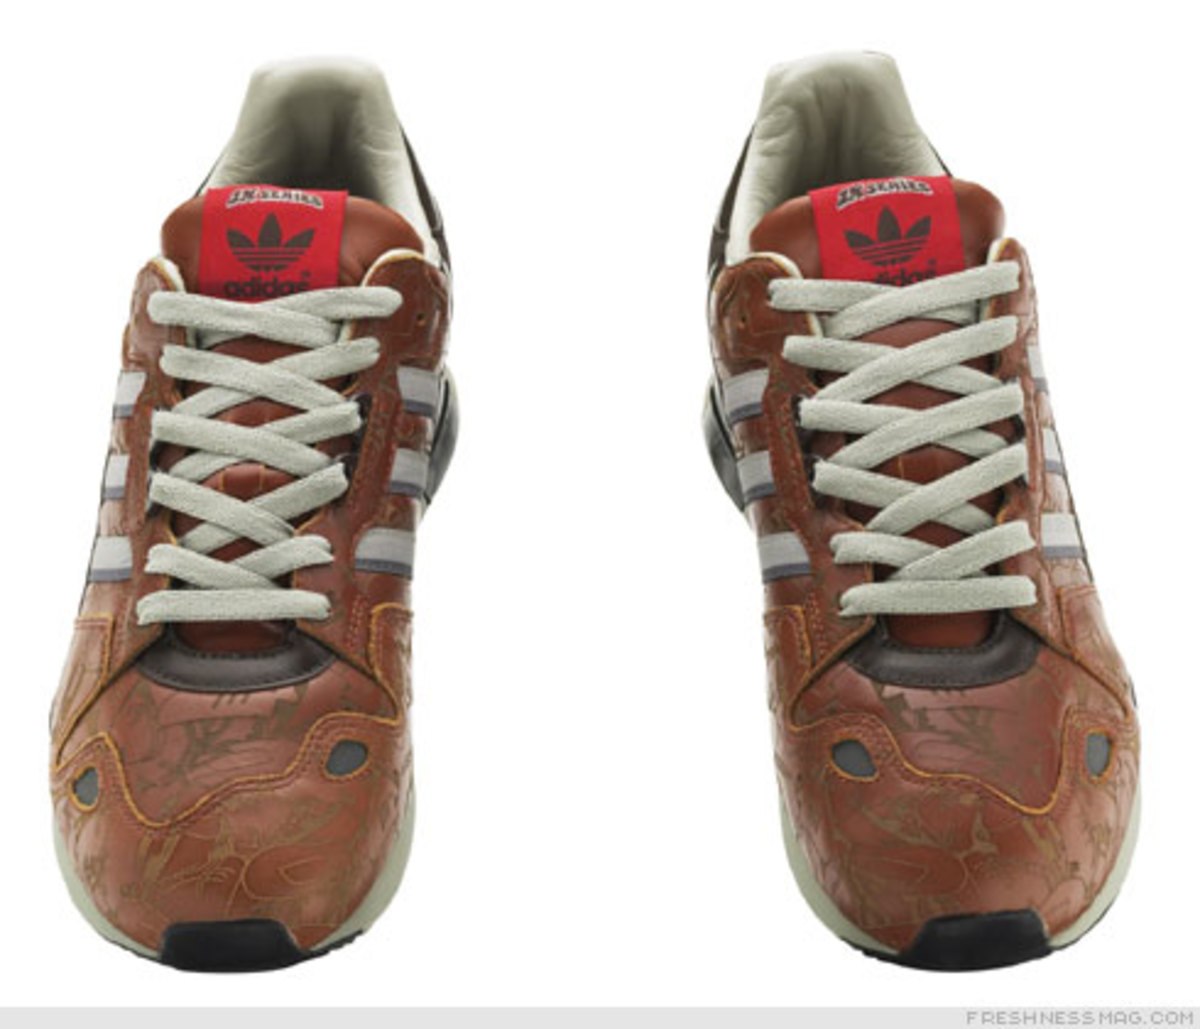 Freshness Feature: Adidas ZX Family - Camo Pack - 6